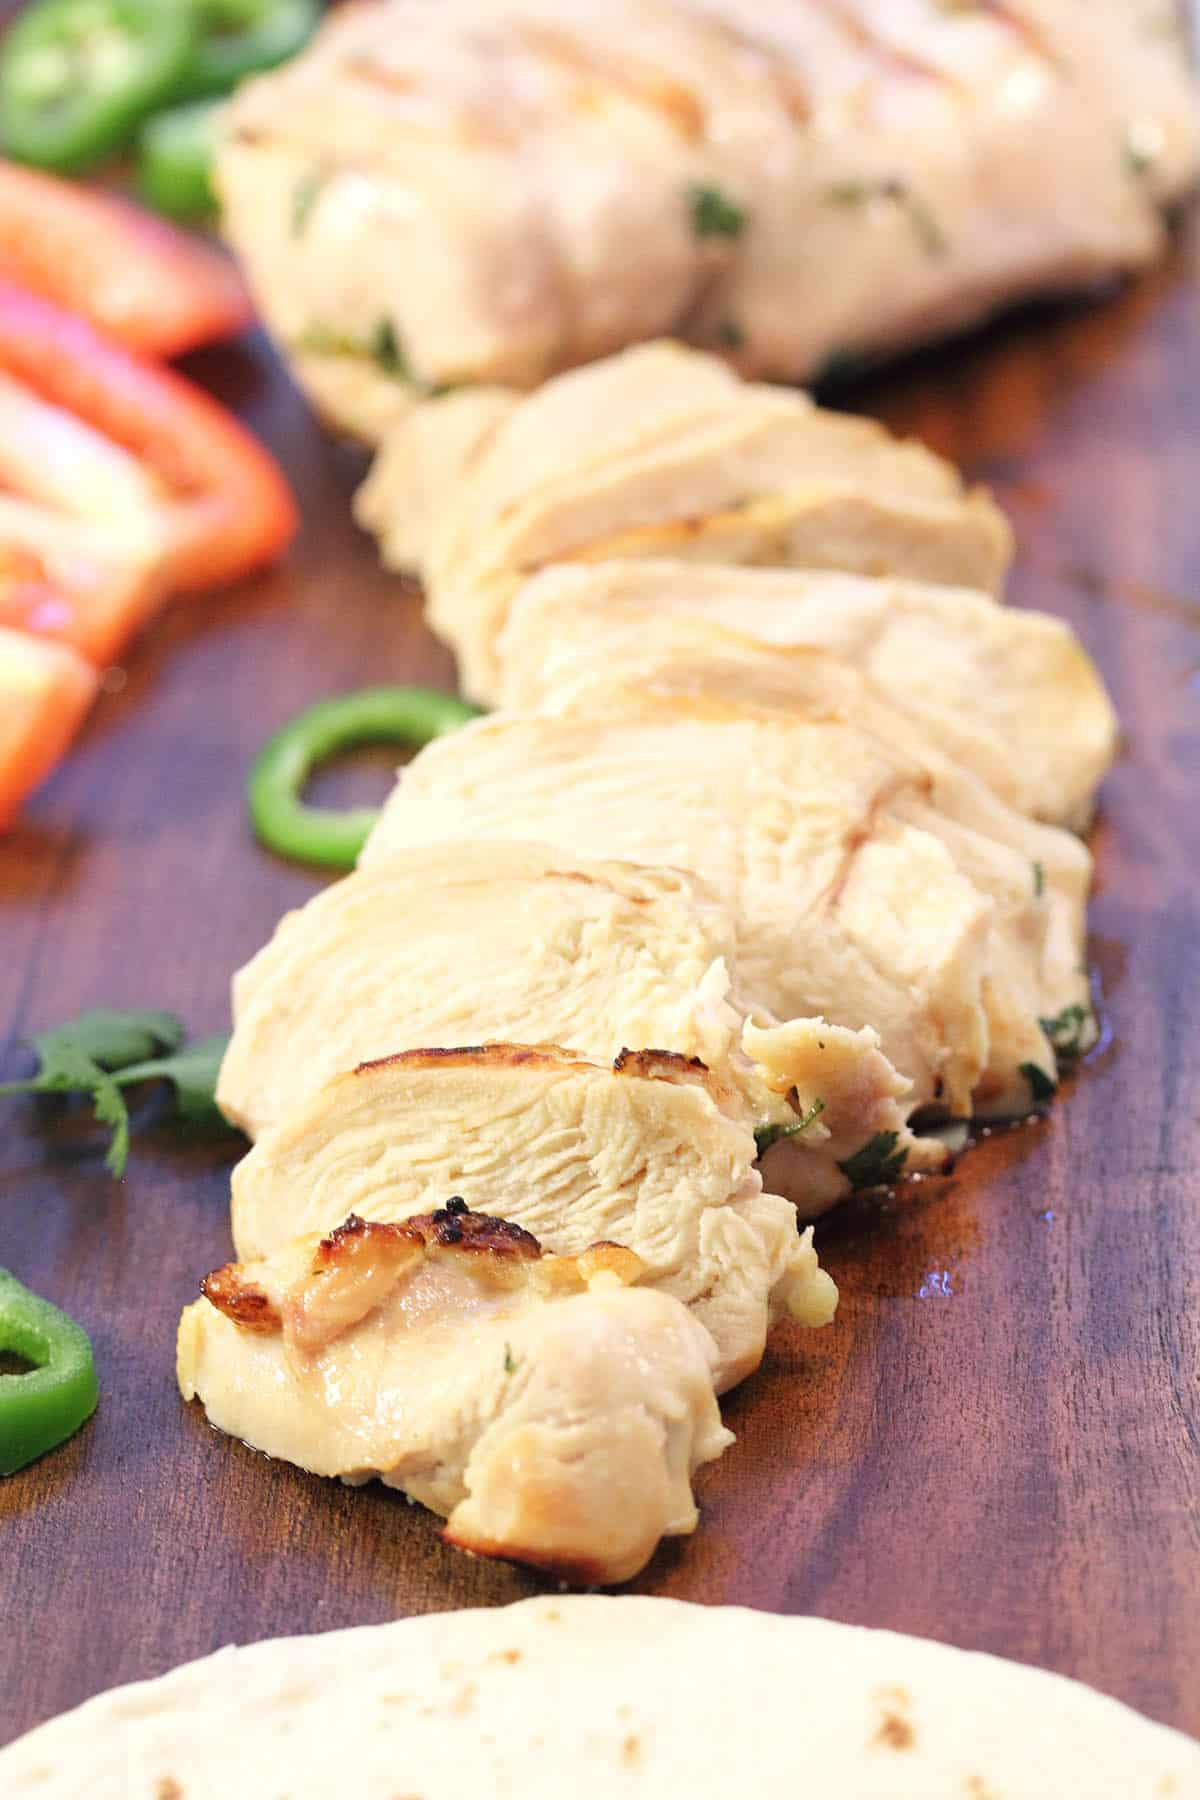 Closeup of moist sliced chicken on wooden board.